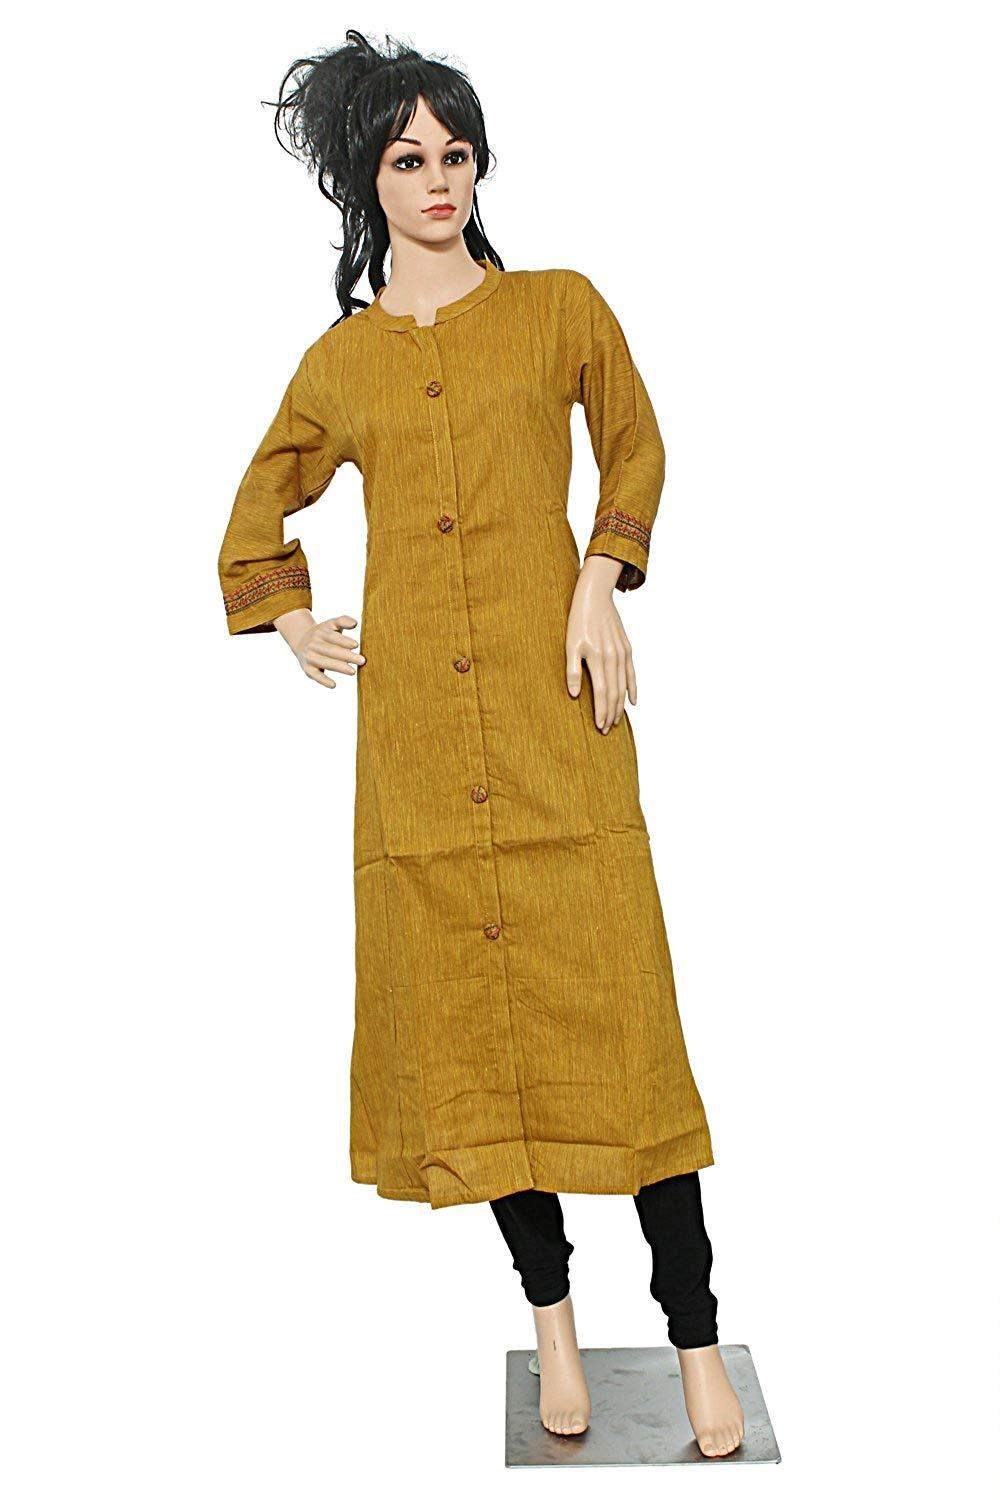 Plain/Solid Casual Cotton Kurti for Women's - Bagaholics Gift